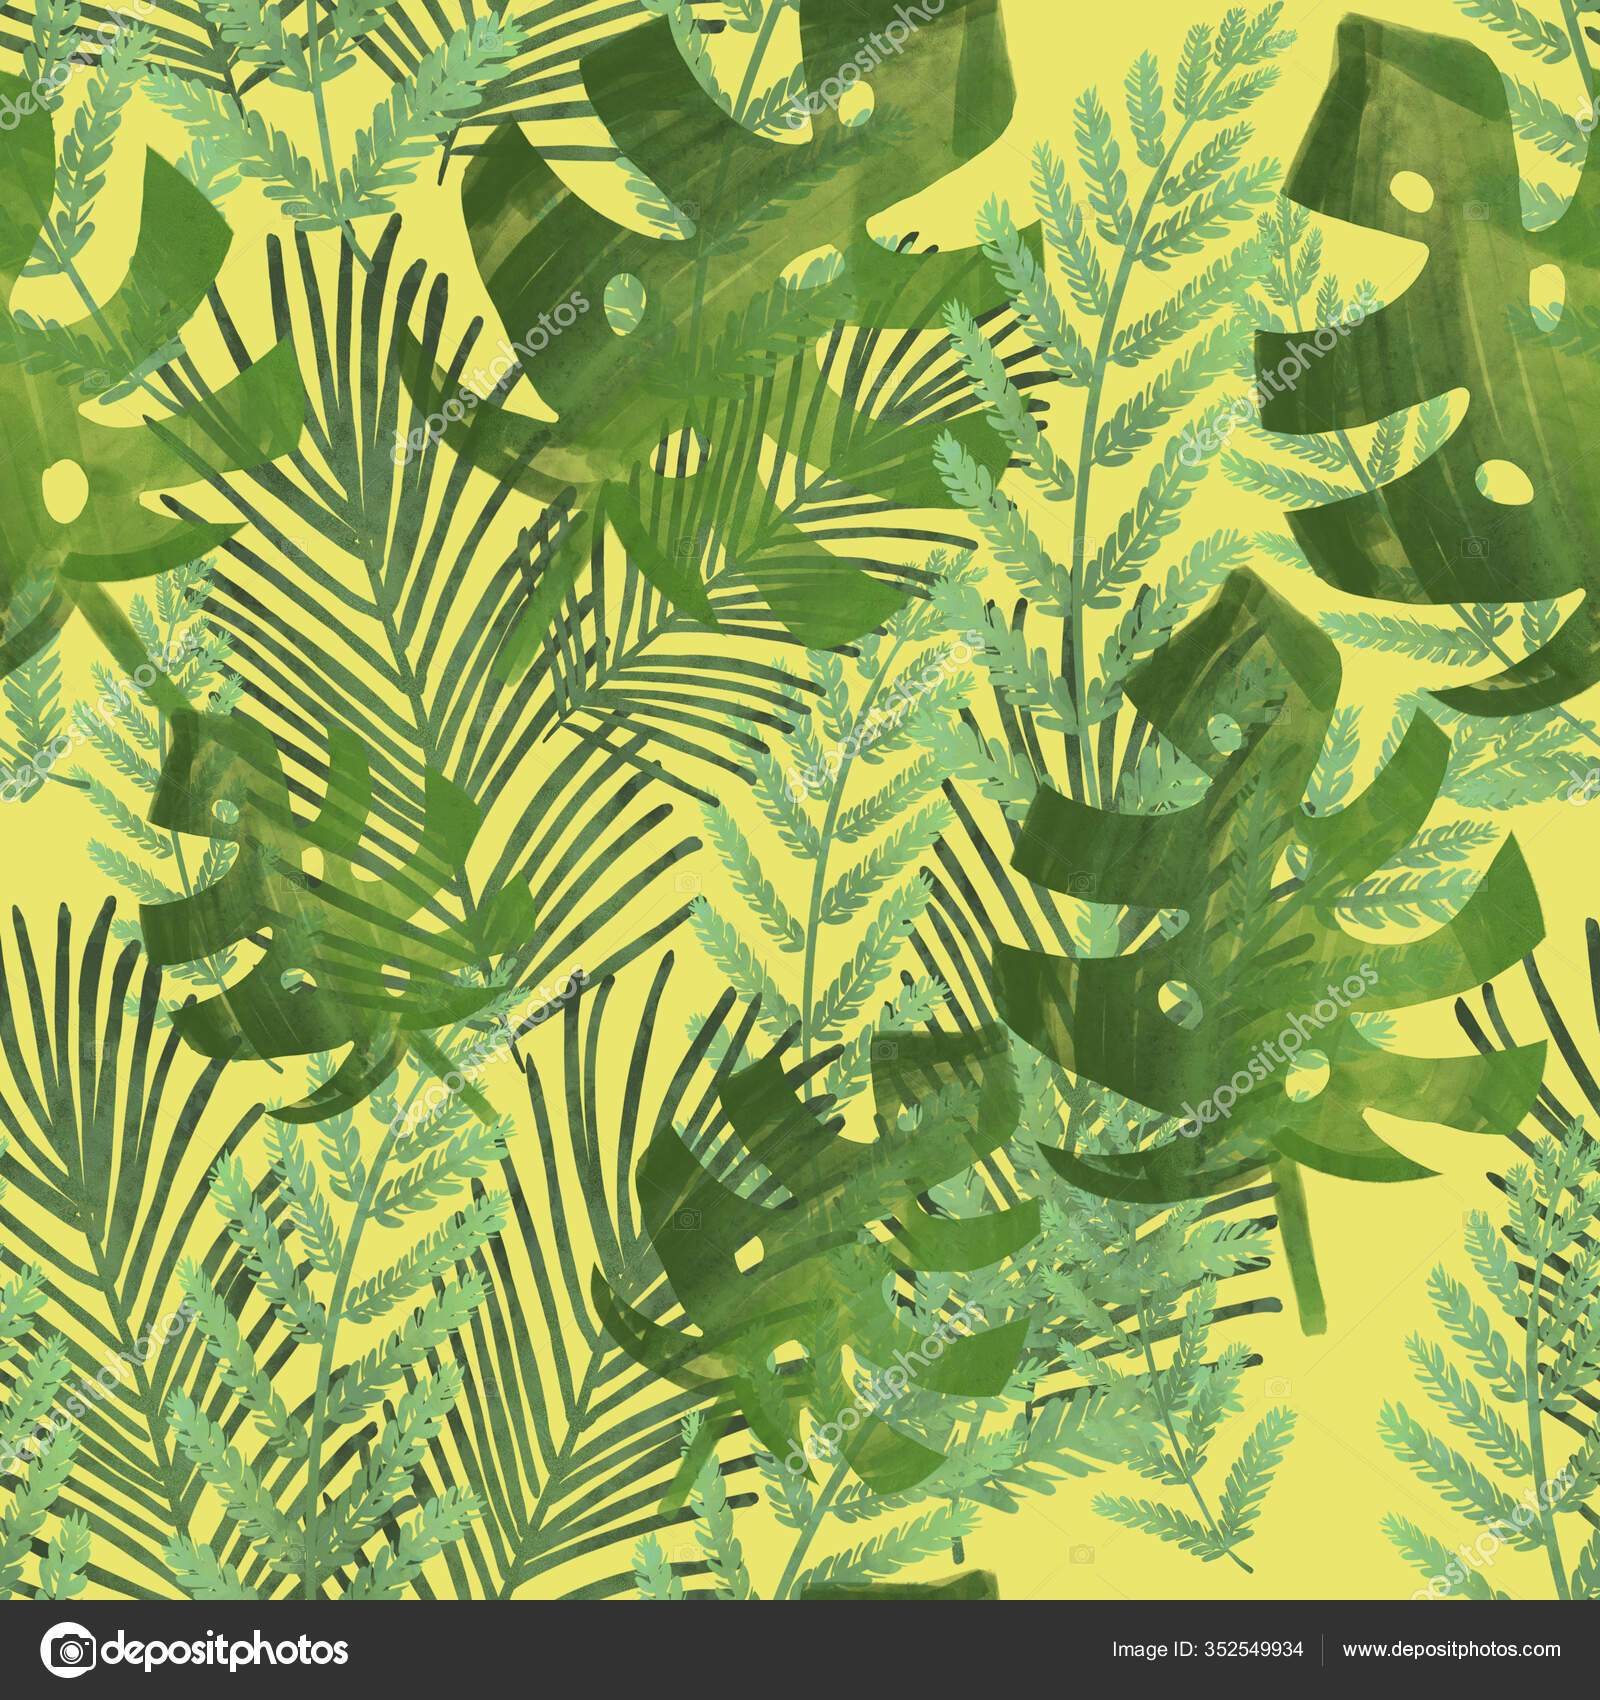 Tropical Leaves Yellow Background Palm Leaves Monstera Ferns Banana Leaves Stock Photo C Kkvate 352549934 Download 4,229 tropical leaves free vectors. https depositphotos com 352549934 stock photo tropical leaves yellow background palm html